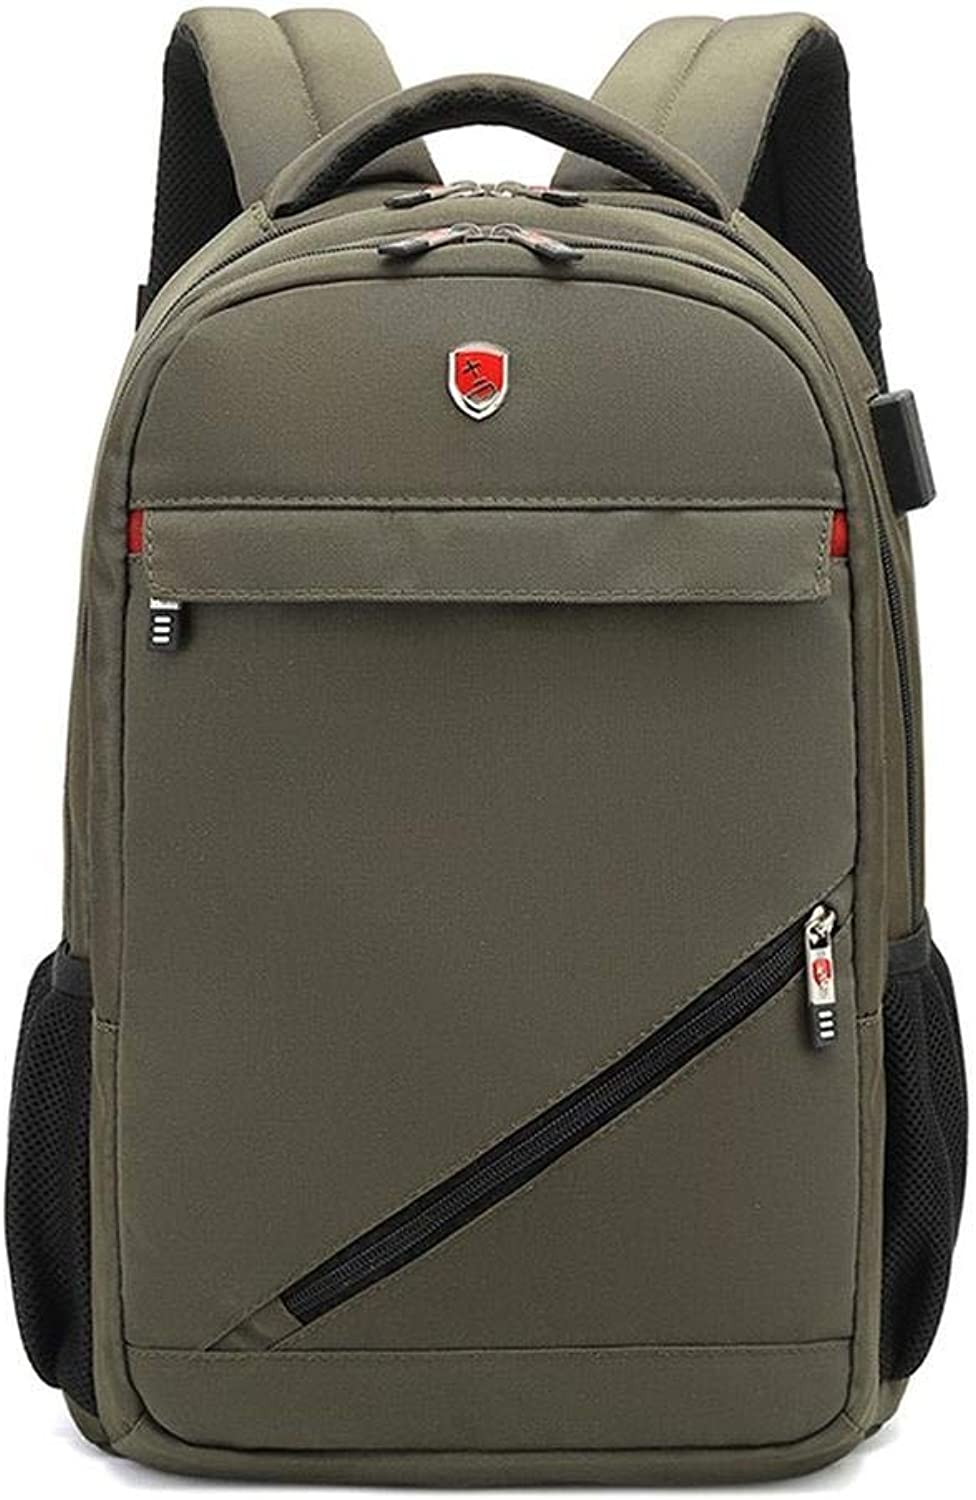 Laptop BackpackBusiness Computer Bag Outdoor Backpack 15 6 Inch Laptop Backpack Travel Bag Bag USB Hole Army Green